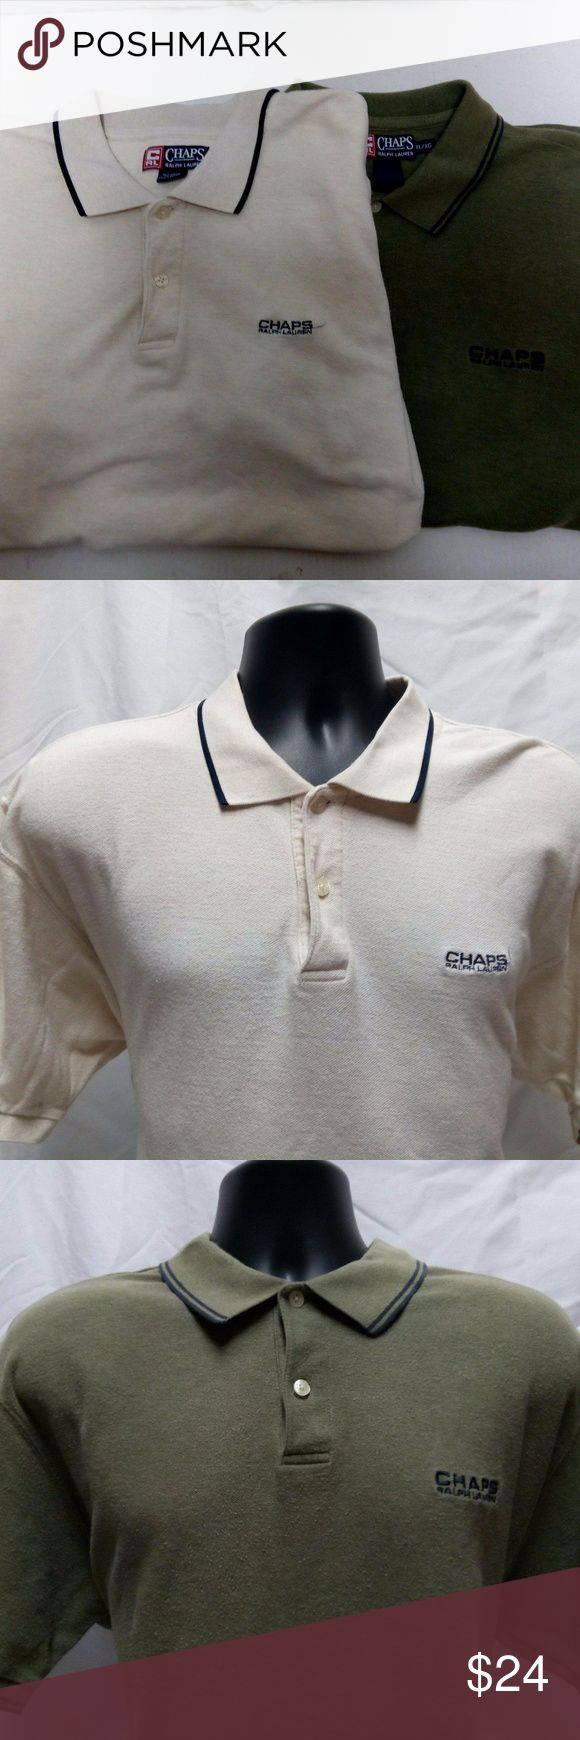 Chaps Ralph Lauren Polo Shirts Lot of 2 XL Brand: Chaps Ralph Lauren   Style: Polo Shirt  Condition: This item is used but shows no signs of tears, rips, or stains unless otherwise noted. It is overall in wonderful condition and can be purchased at a fraction of the regular price!  Size: XL  Measurements:  White/Cream:  Chest- 48 Length- 29 1/2  Green:  Chest: 47 Length- 48 1/2 Ralph Lauren Shirts Polos